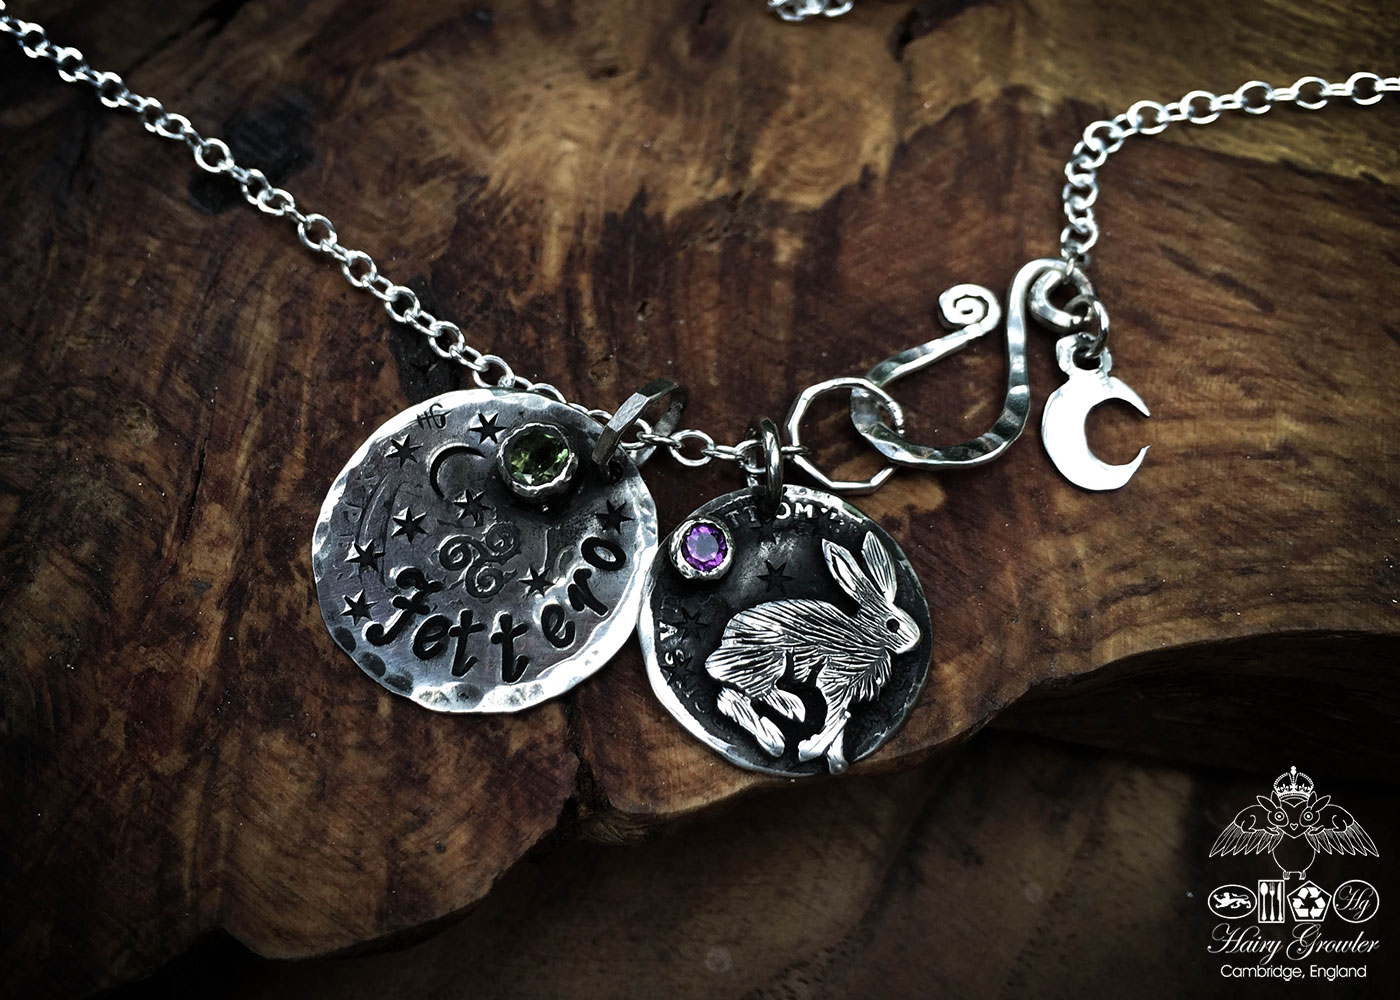 Handmade and repurposed sterling silver magical leaping hare necklace